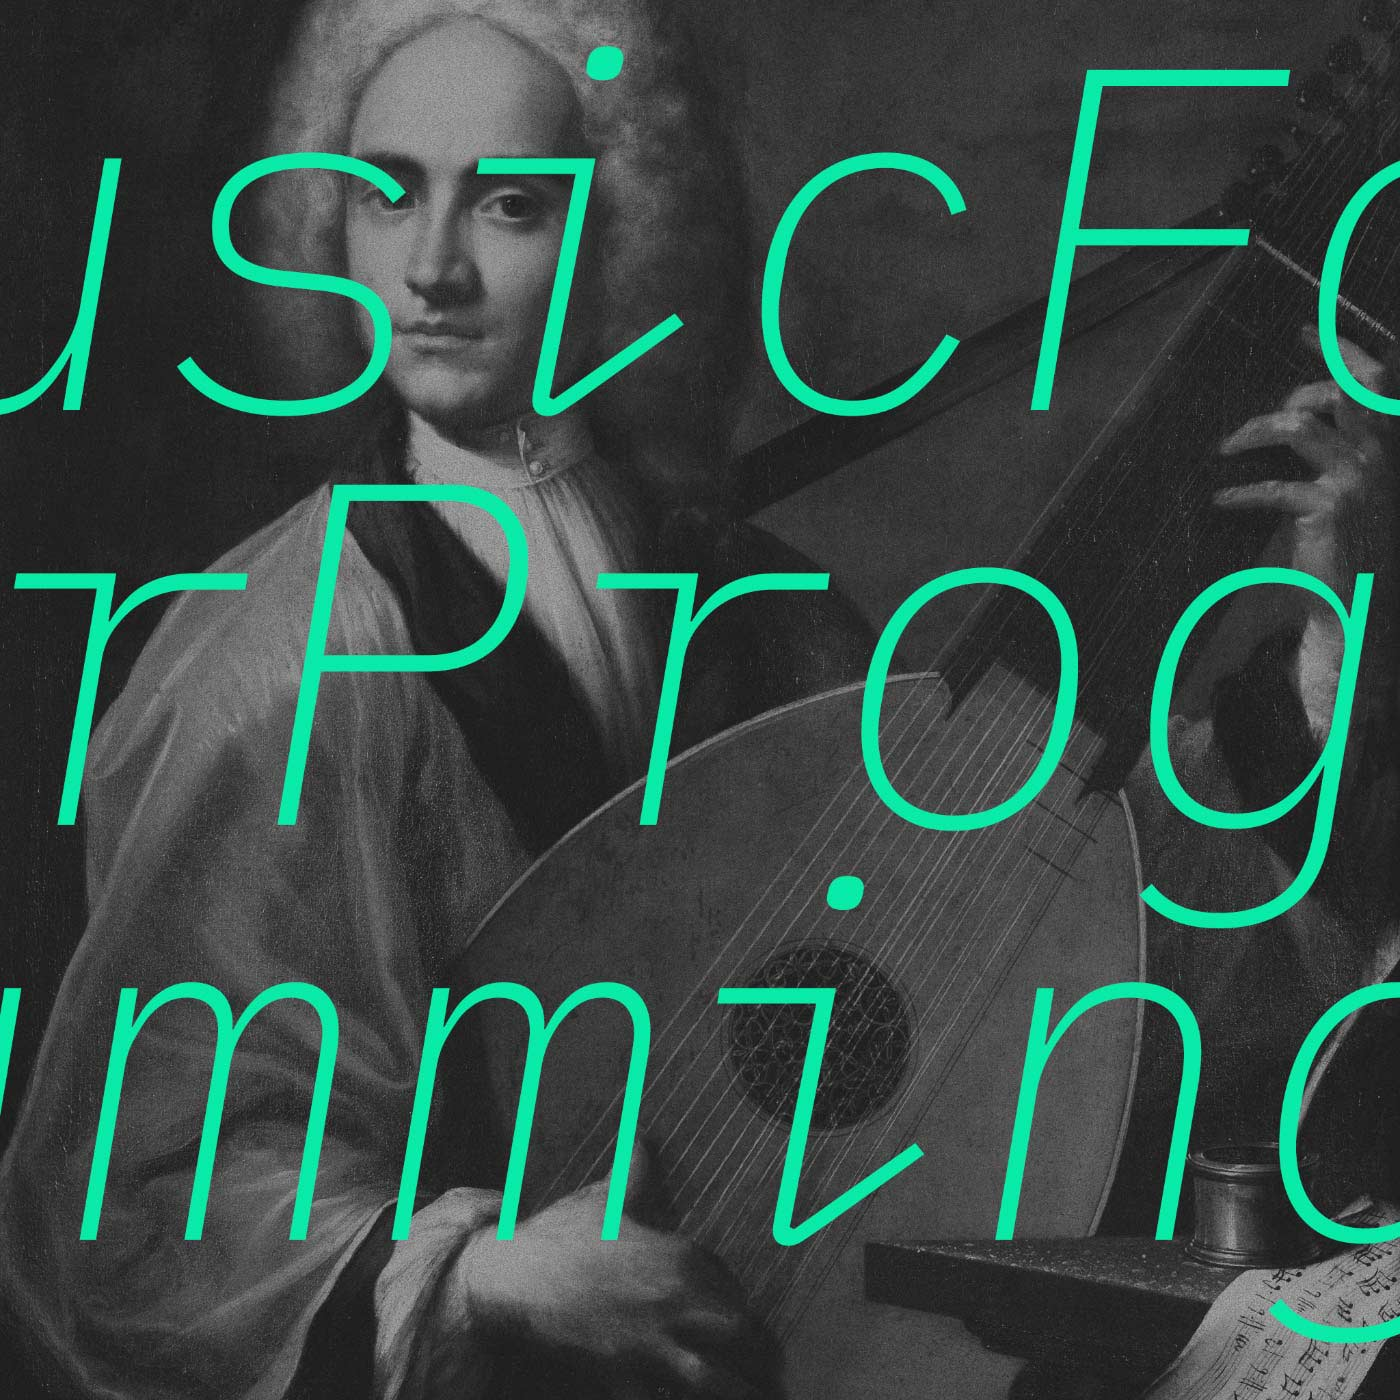 https://i0.wp.com/musicforprogramming.net/img/folder.jpg